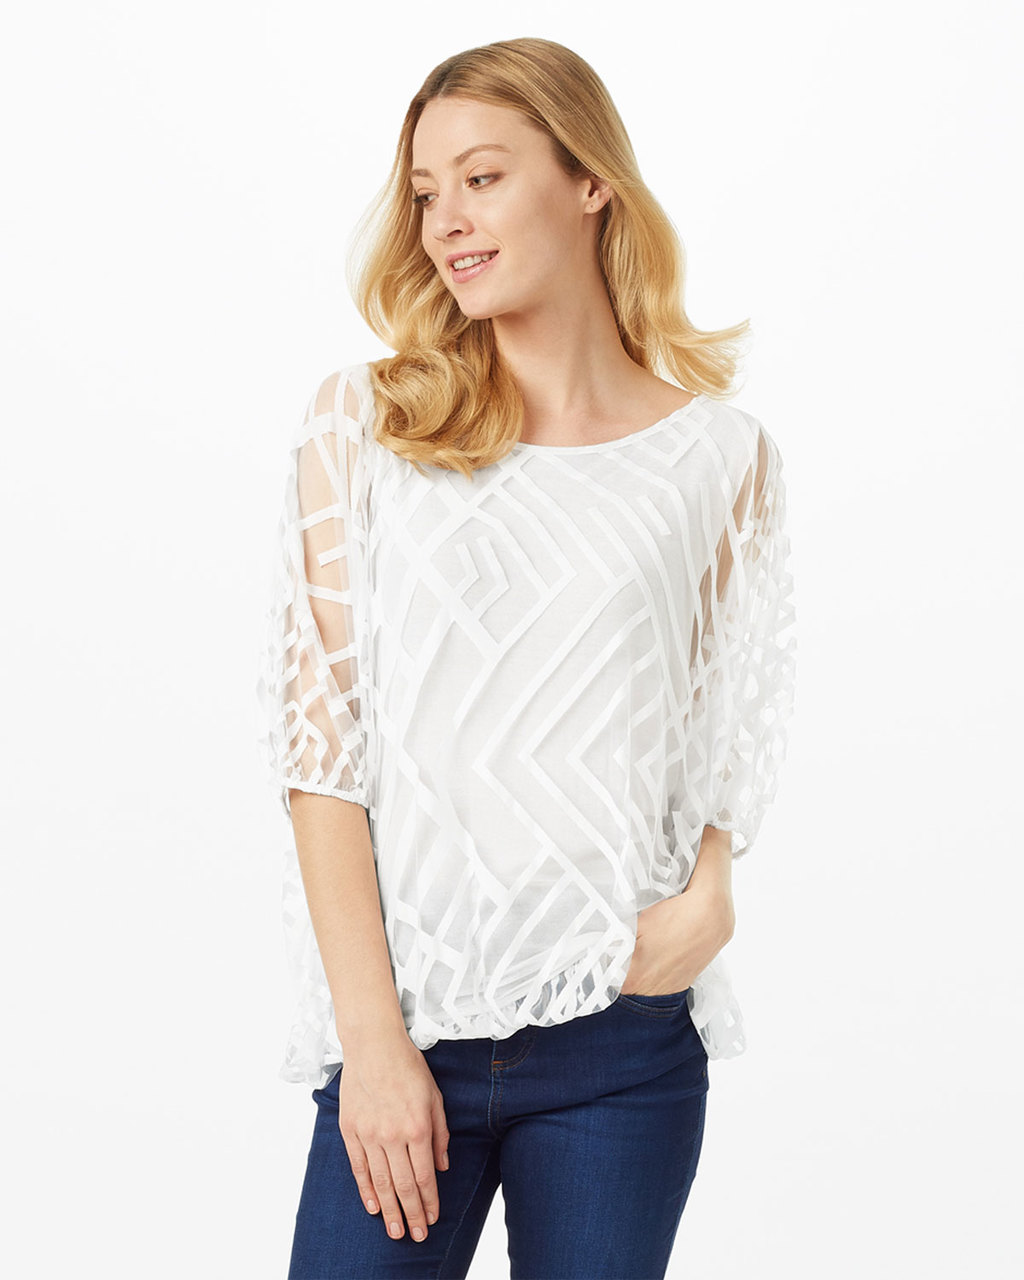 Eve Geo Burnout - neckline: round neck; pattern: plain; style: standard; predominant colour: ivory/cream; occasions: casual; length: standard; fit: slim fit; sleeve length: 3/4 length; sleeve style: standard; texture group: knits/crochet; pattern type: fabric; fibres: viscose/rayon - mix; shoulder detail: sheer at shoulder; season: s/s 2016